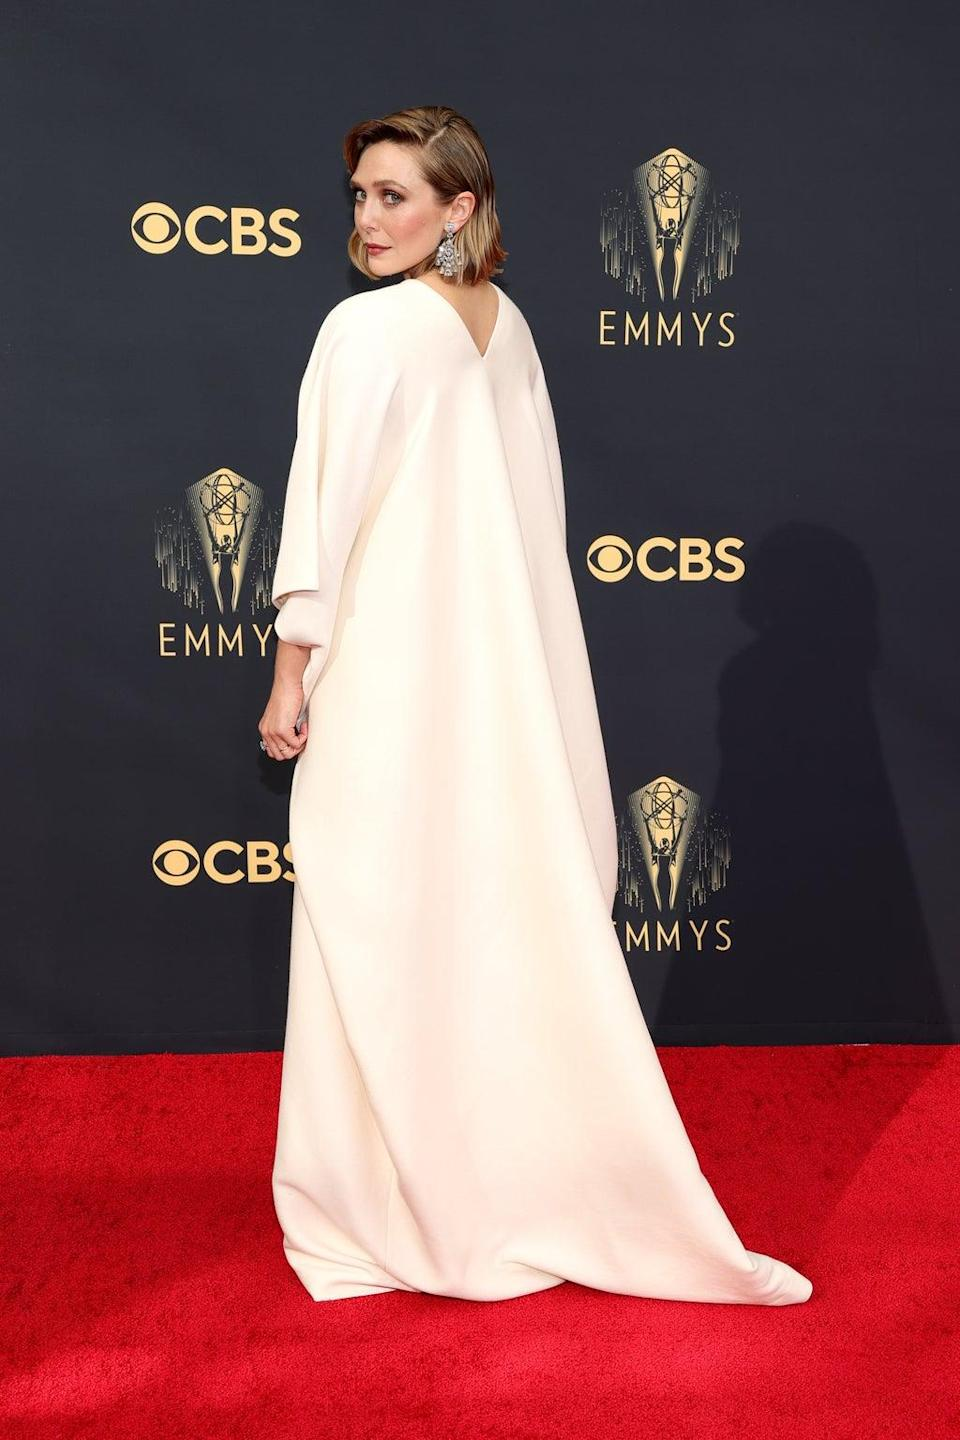 Elizabeth Olsen wears The Row at the 2021 Emmy Awards (Getty Images)